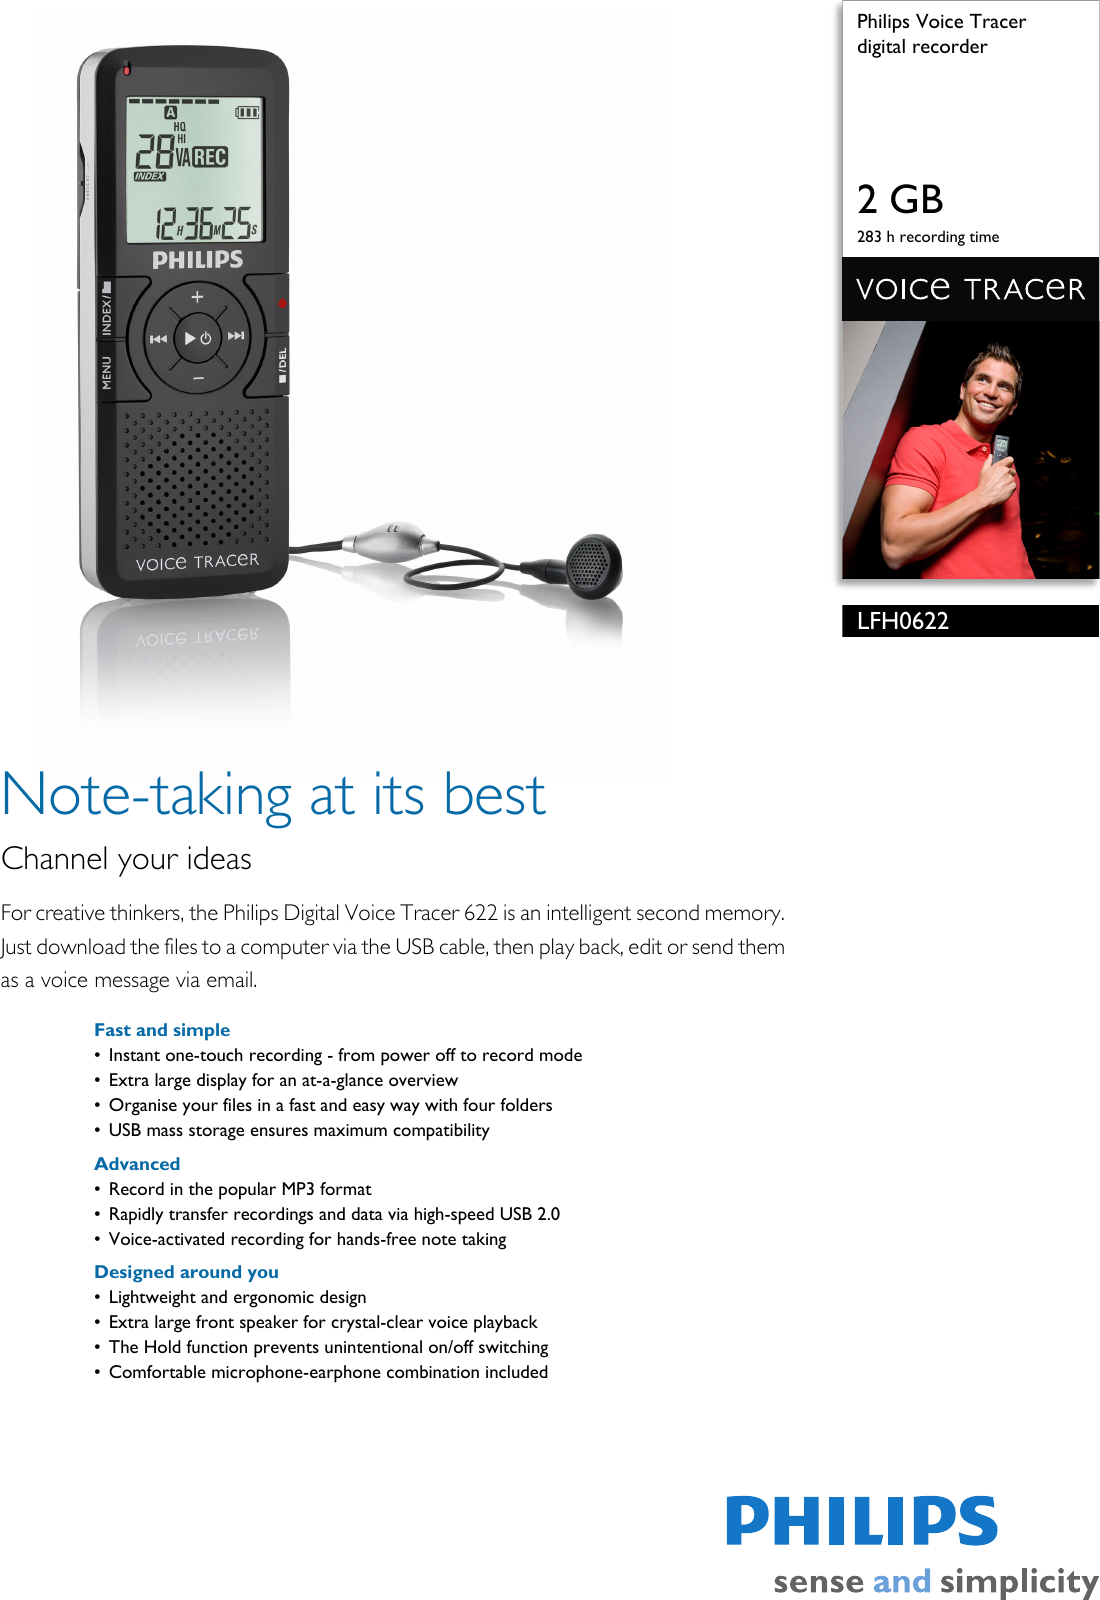 philips voice tracer digital recorder manual